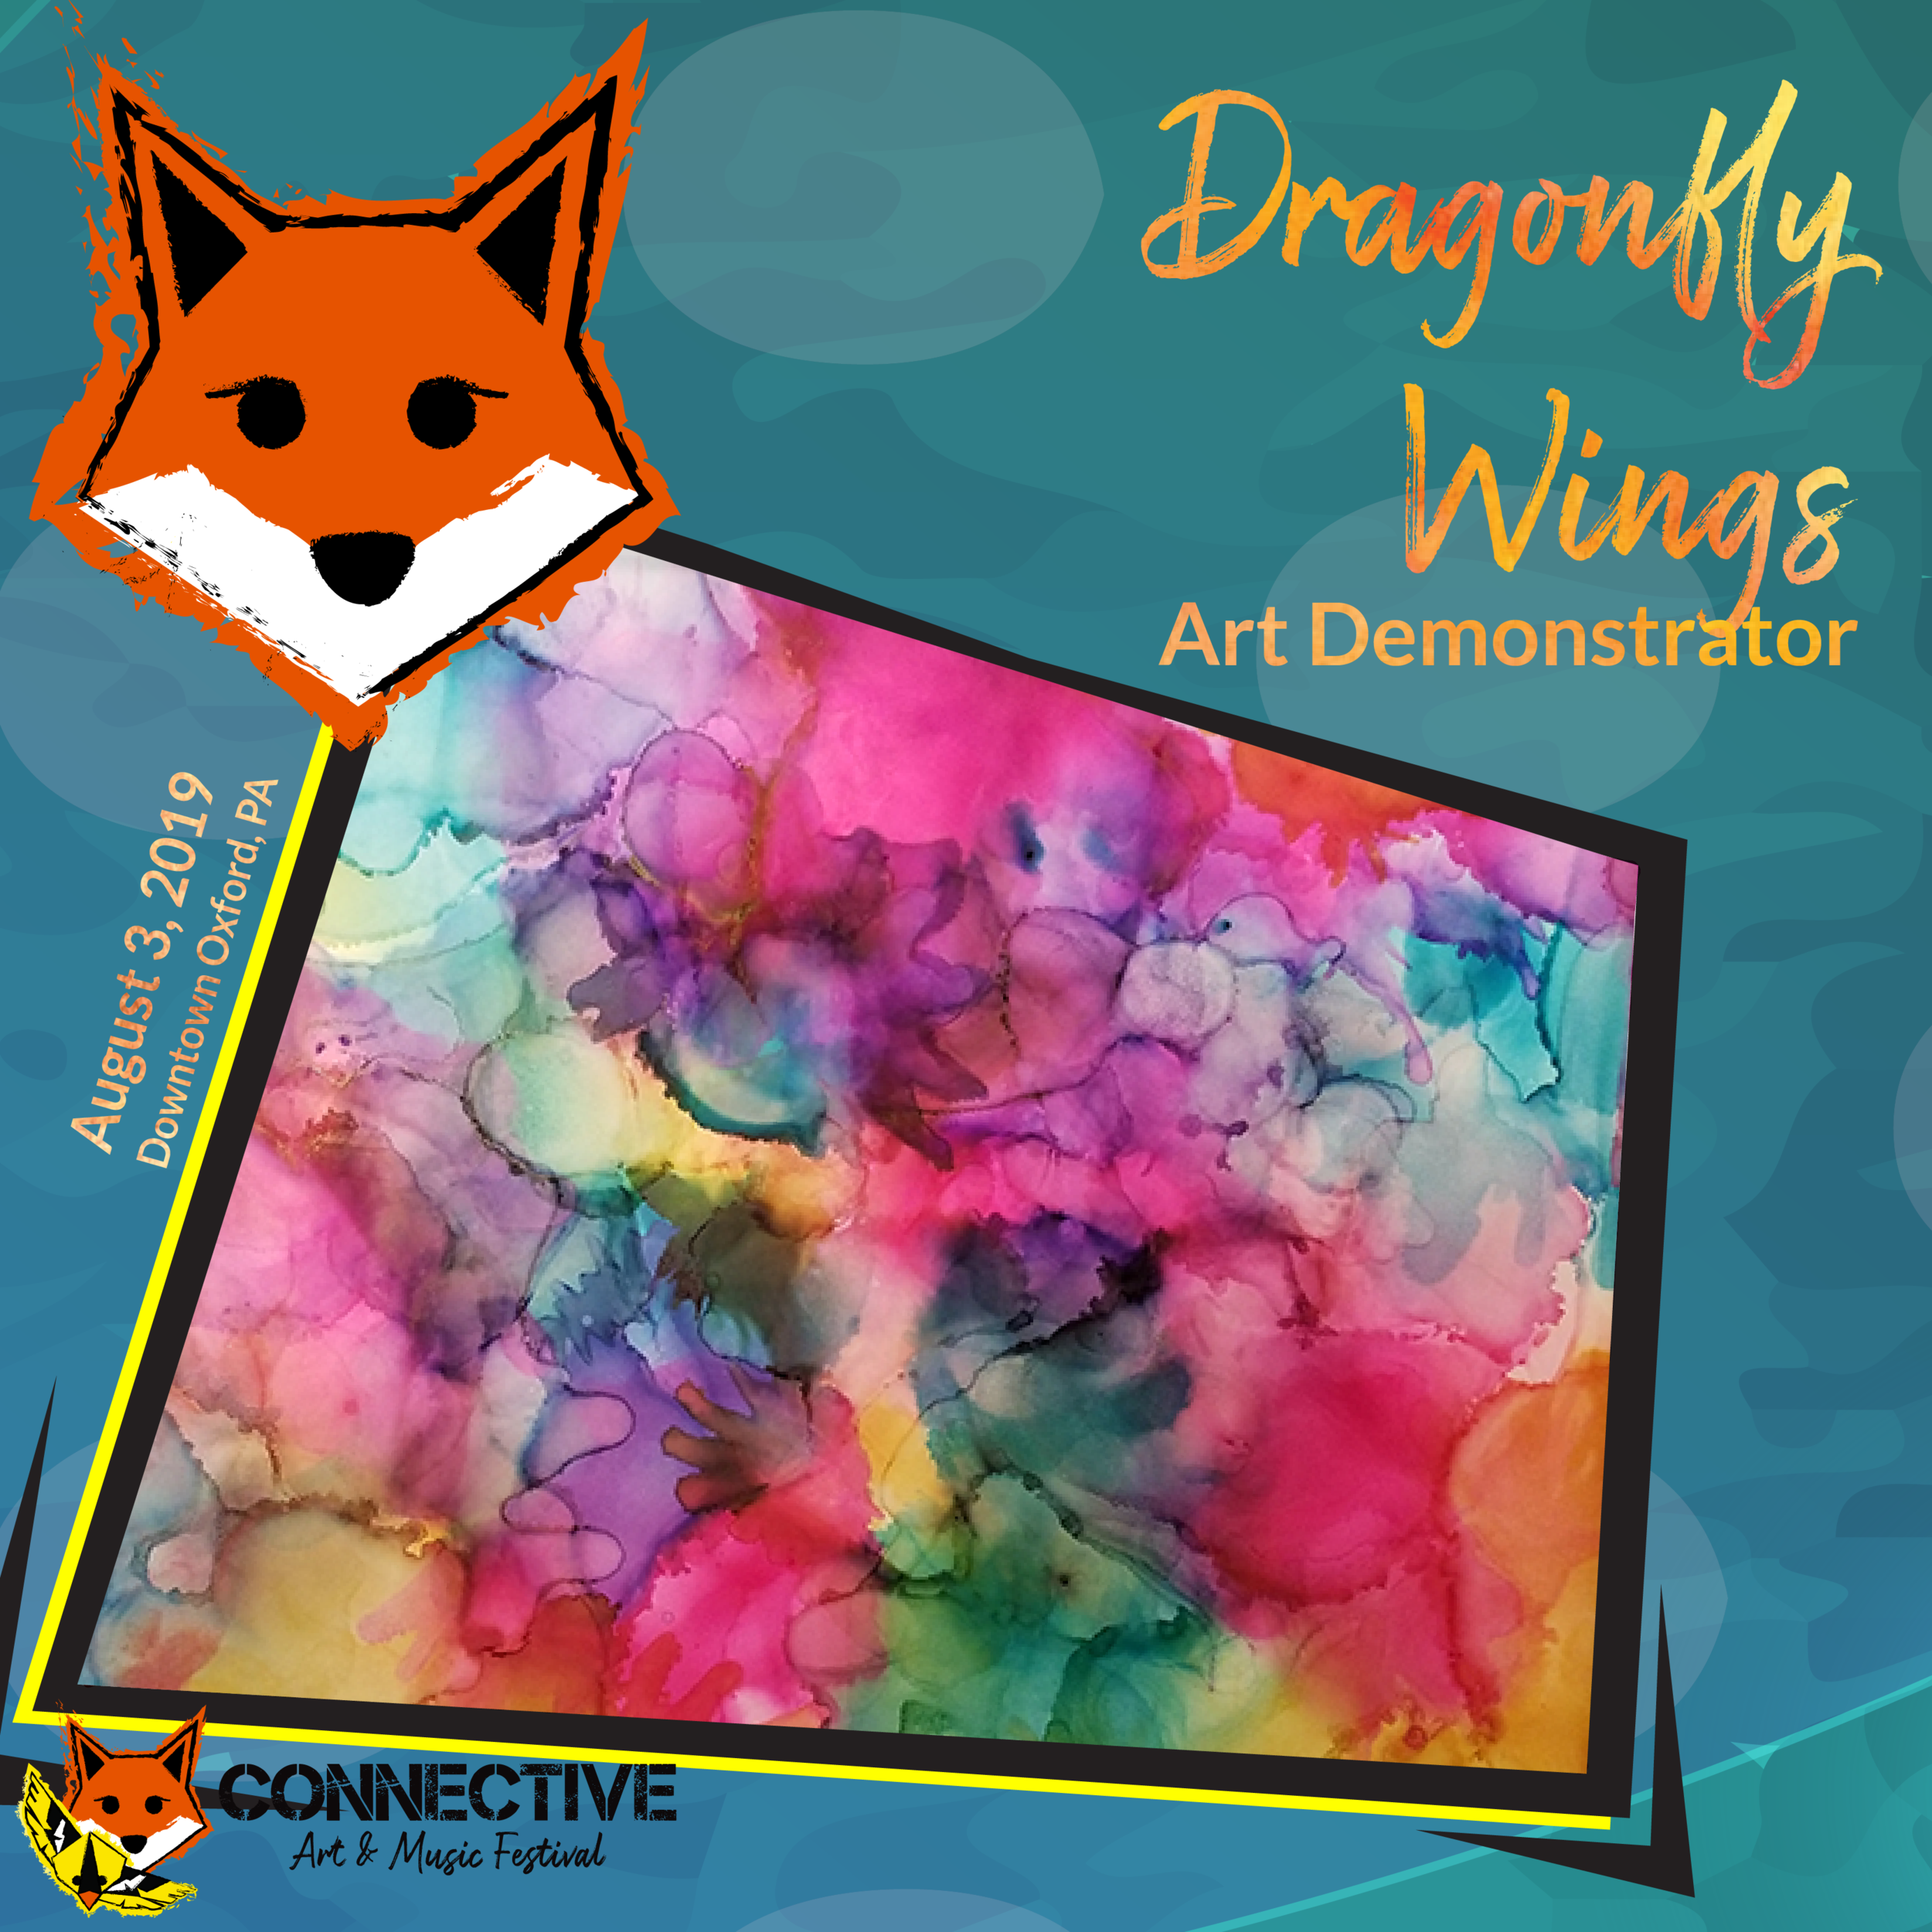 DEMO_Social_DragonflyWings.png